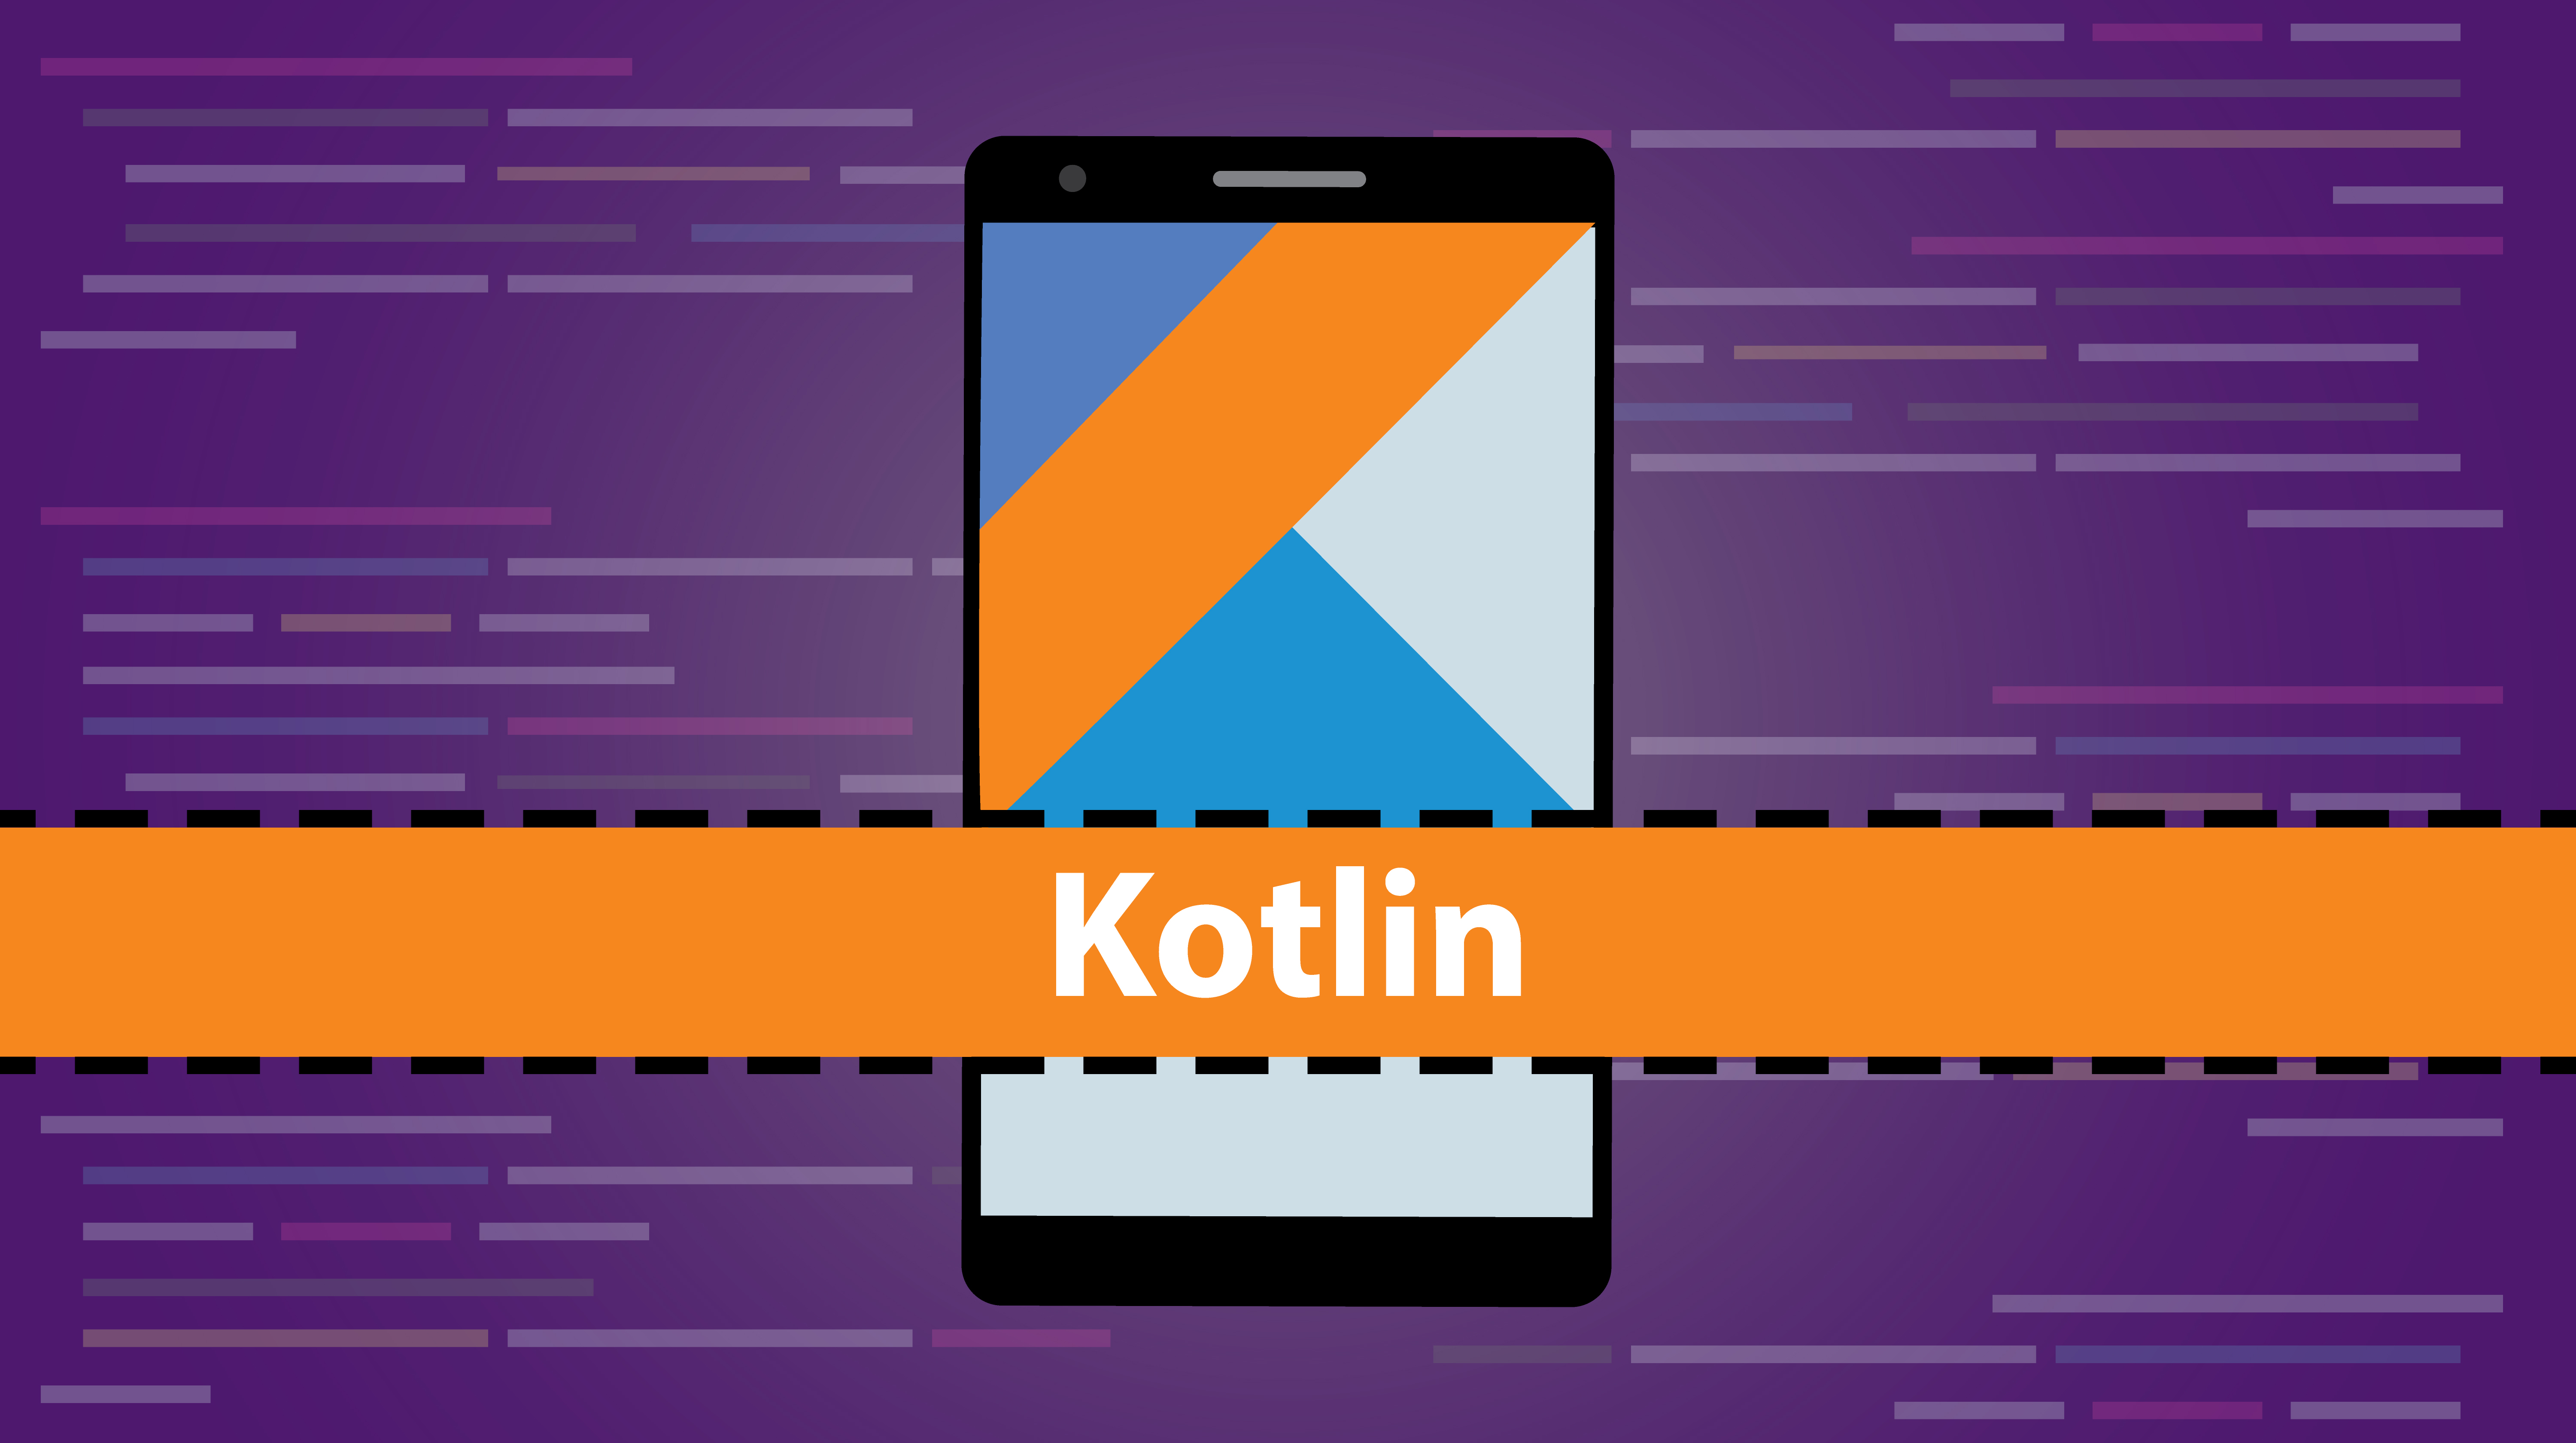 check the post:Kotlin Versus Java in Android App Development for a description of the image